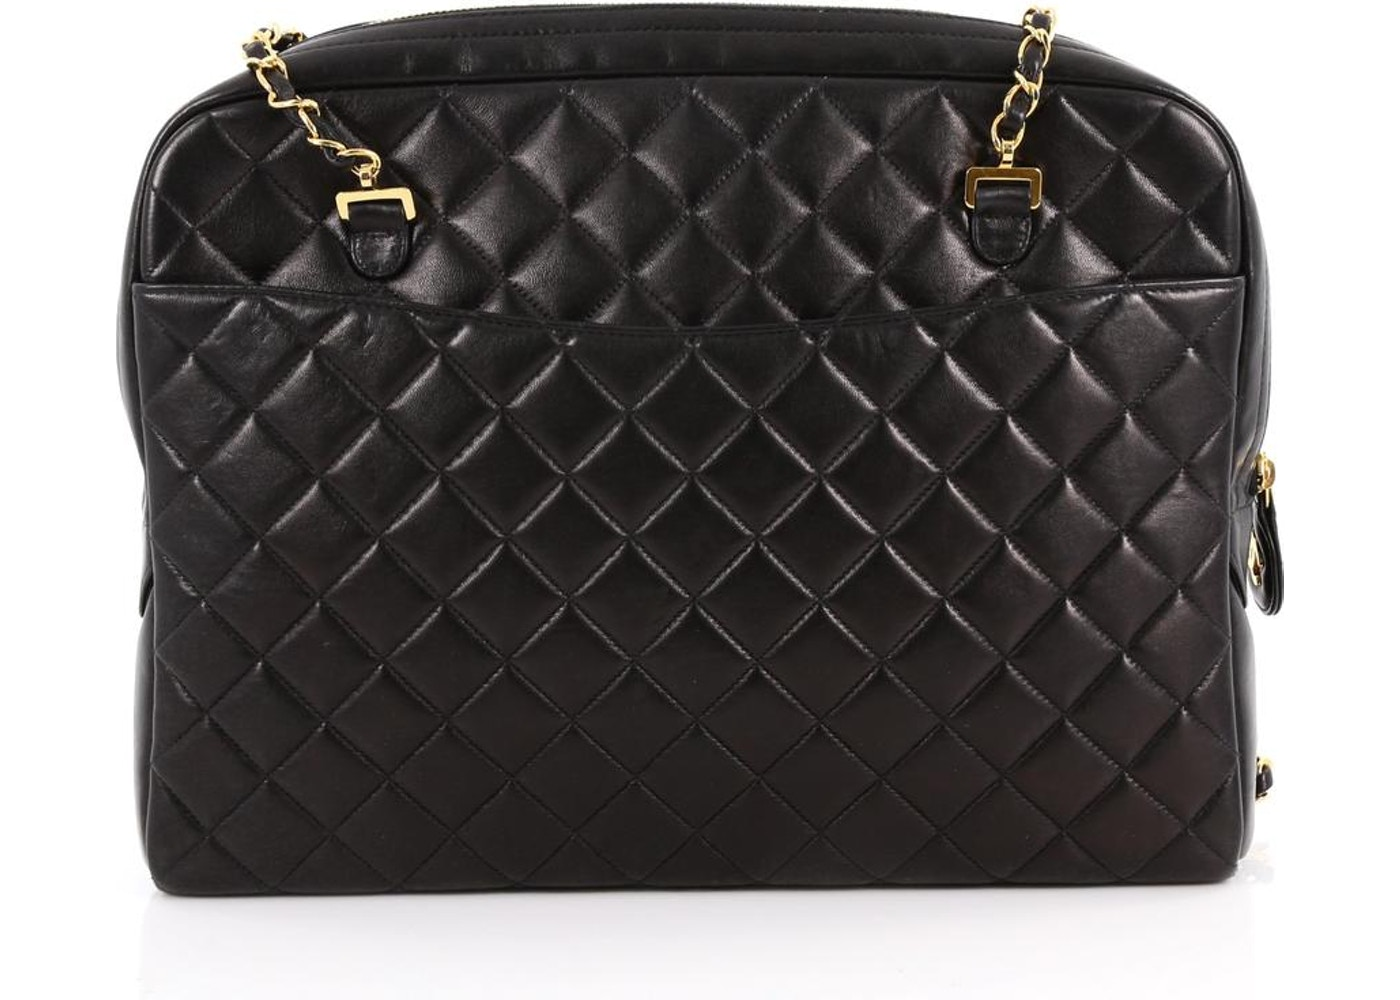 84673db72bec Sell. or Ask. View All Bids. Chanel Vintage Camera Bag Quilted Large Black